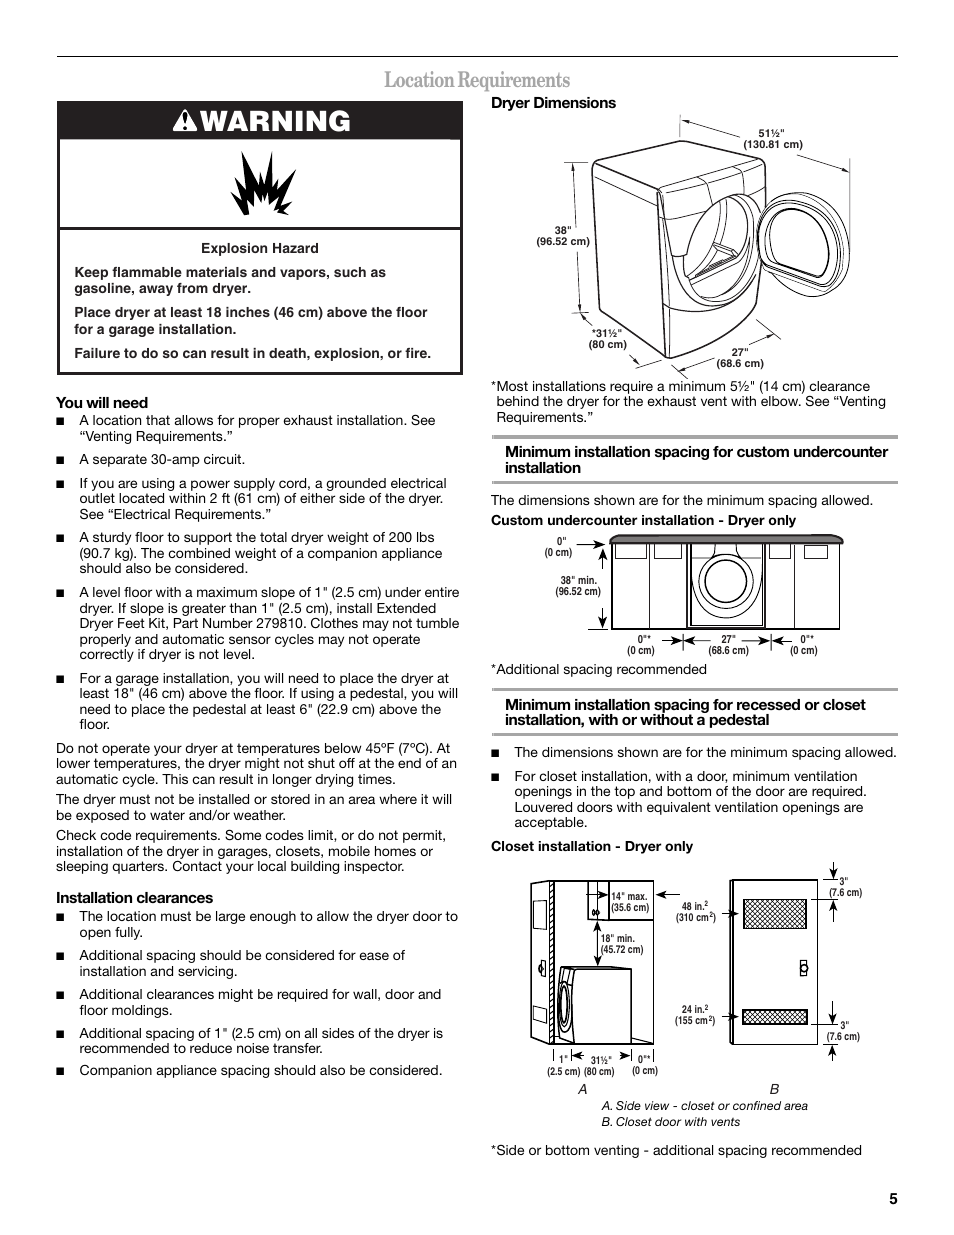 Warning, Location requirements | Whirlpool Duet GEW9250PW0 User Manual |  Page 5 / 28